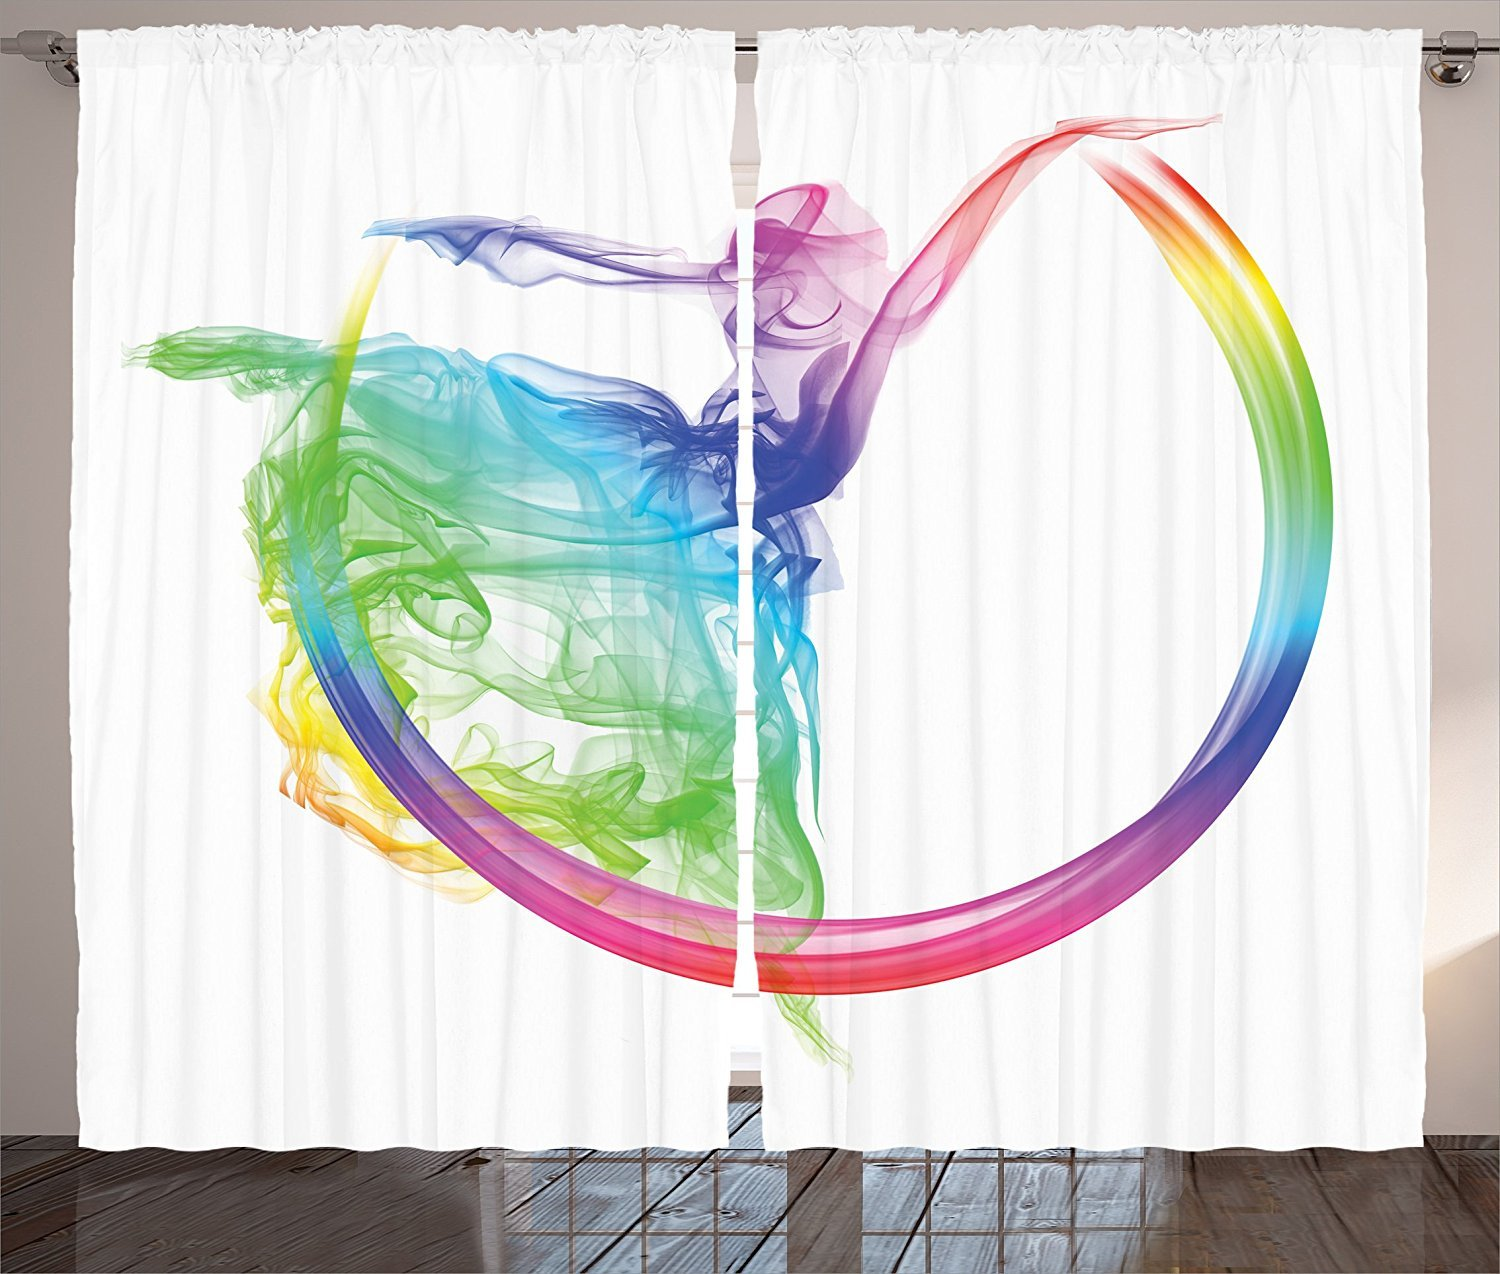 Abstract Home Decor Collection Smoke Dance Shape Silhouette of Dancer Ballerina Rainbow Colors Fantasy Image Living Room Bedroom Curtain 2 Panels Set Blue Aqua Yellow